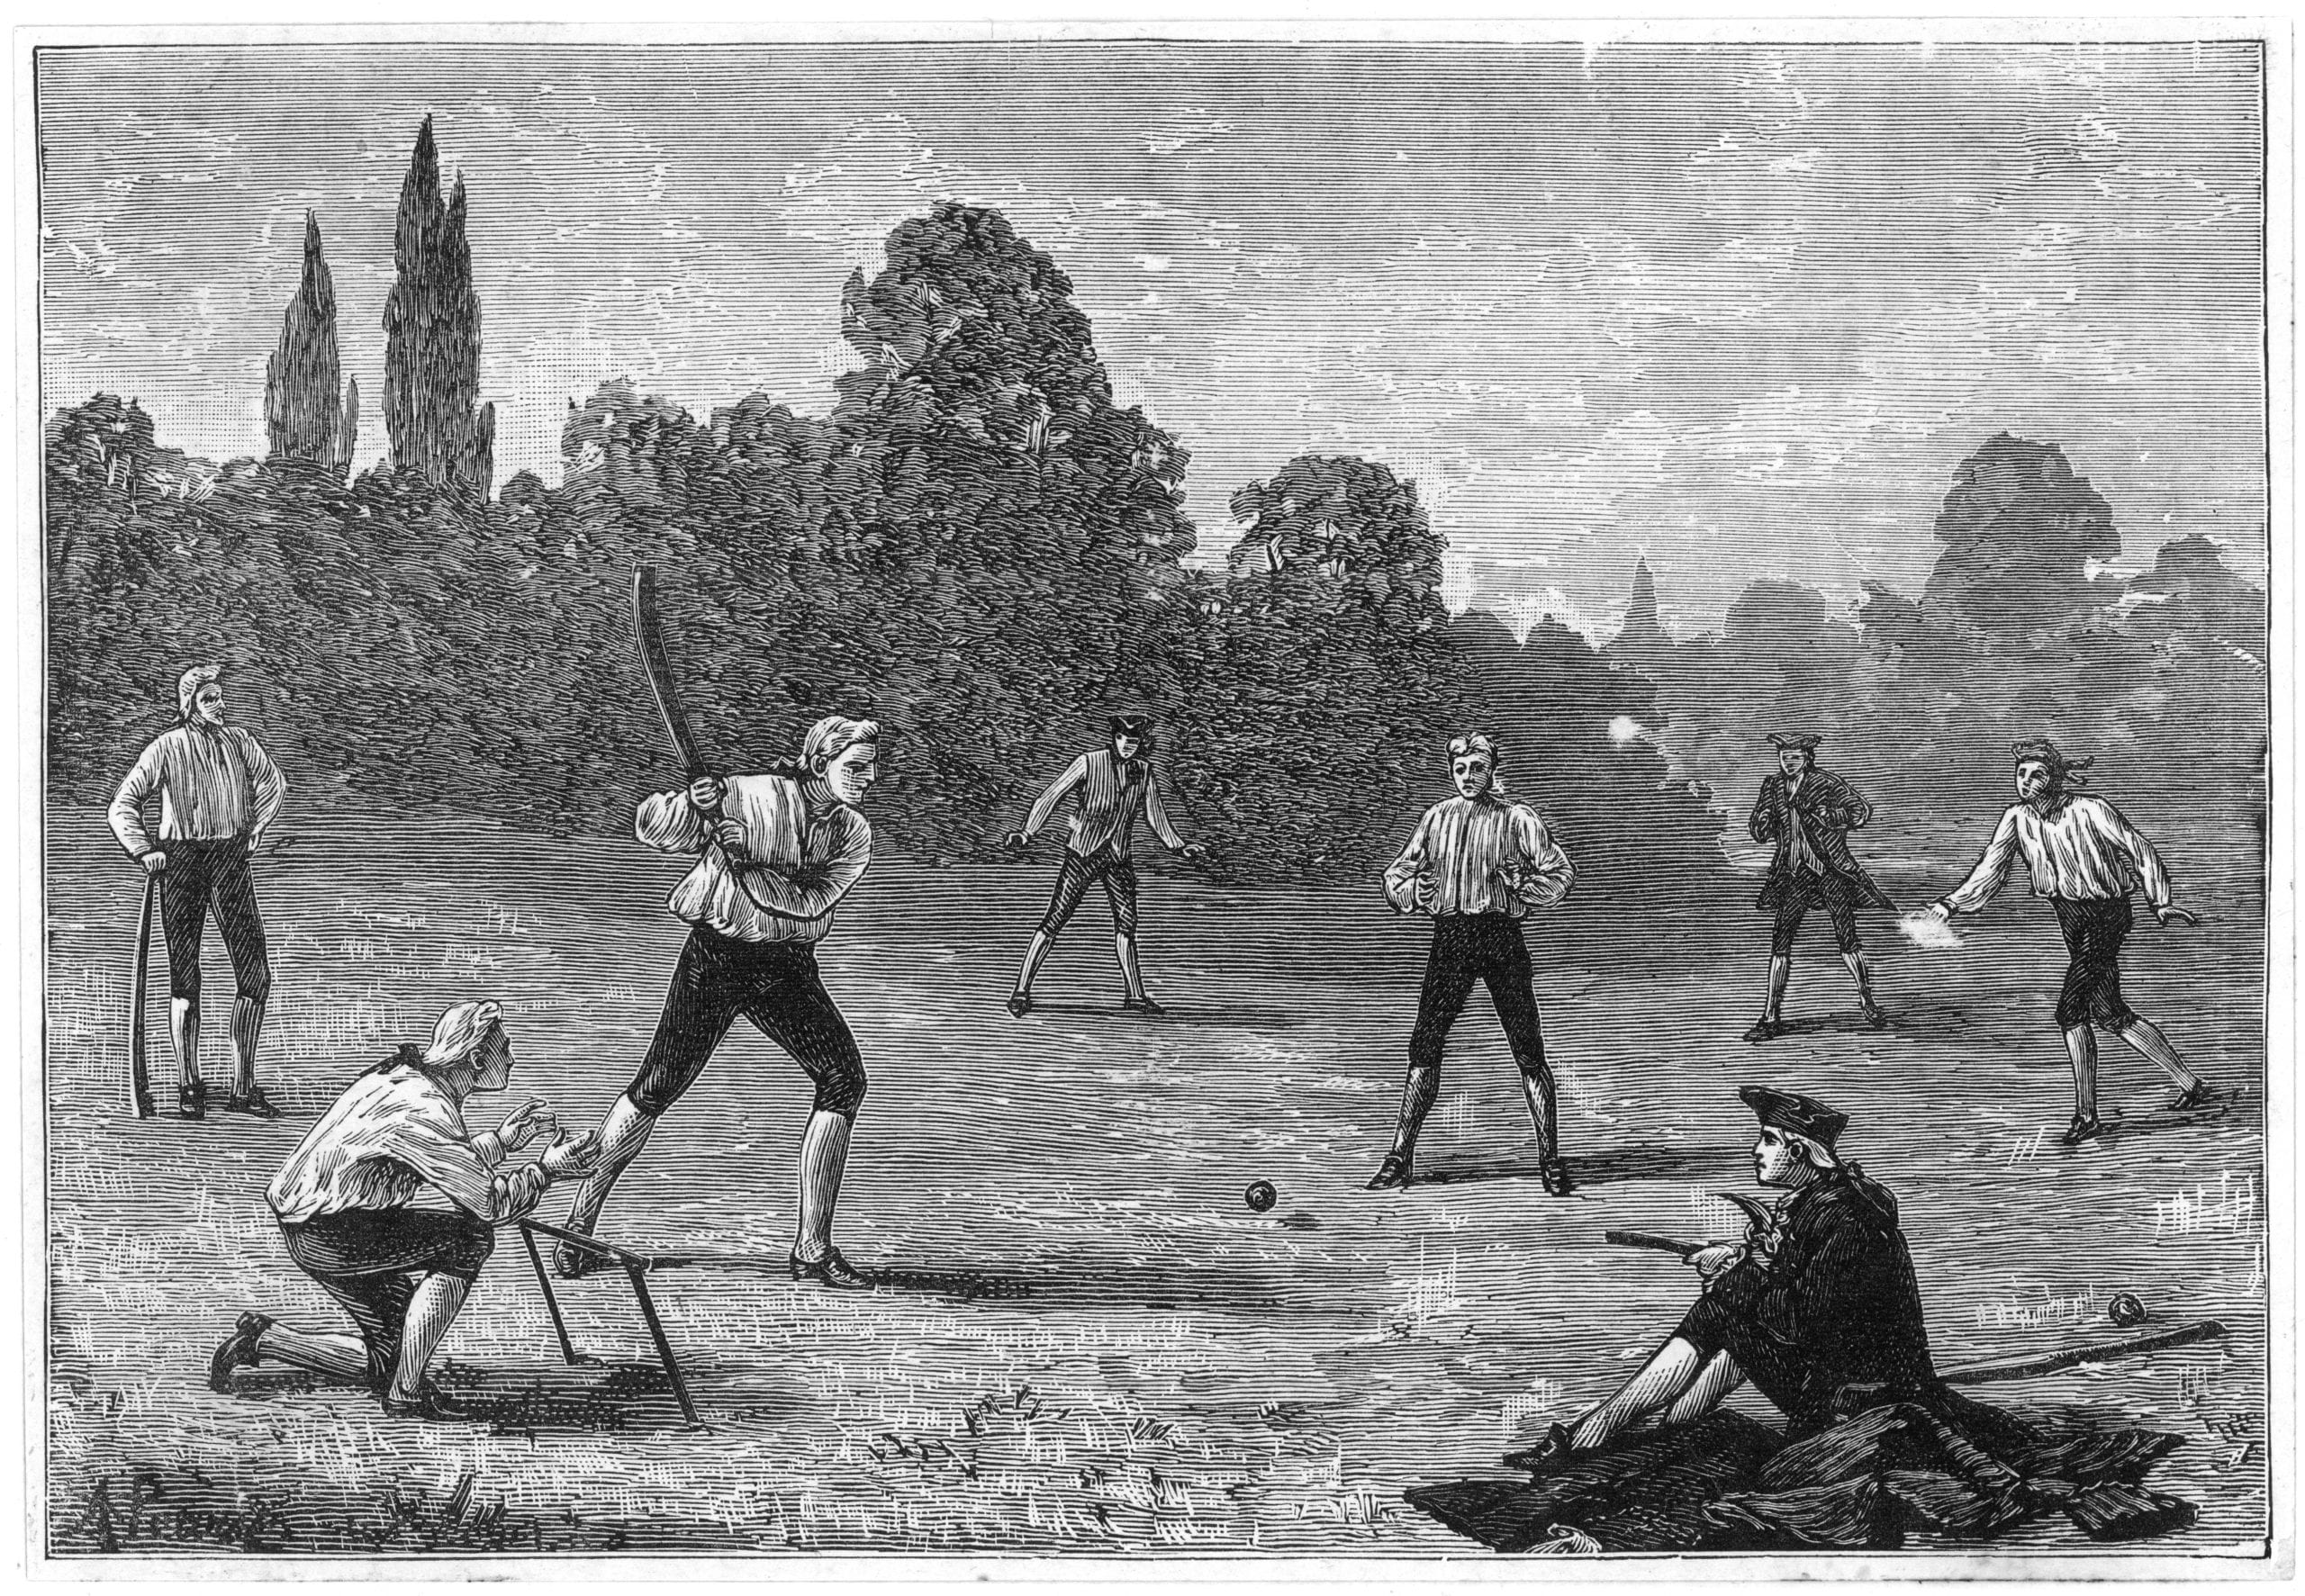 Cricket in the 1770s.